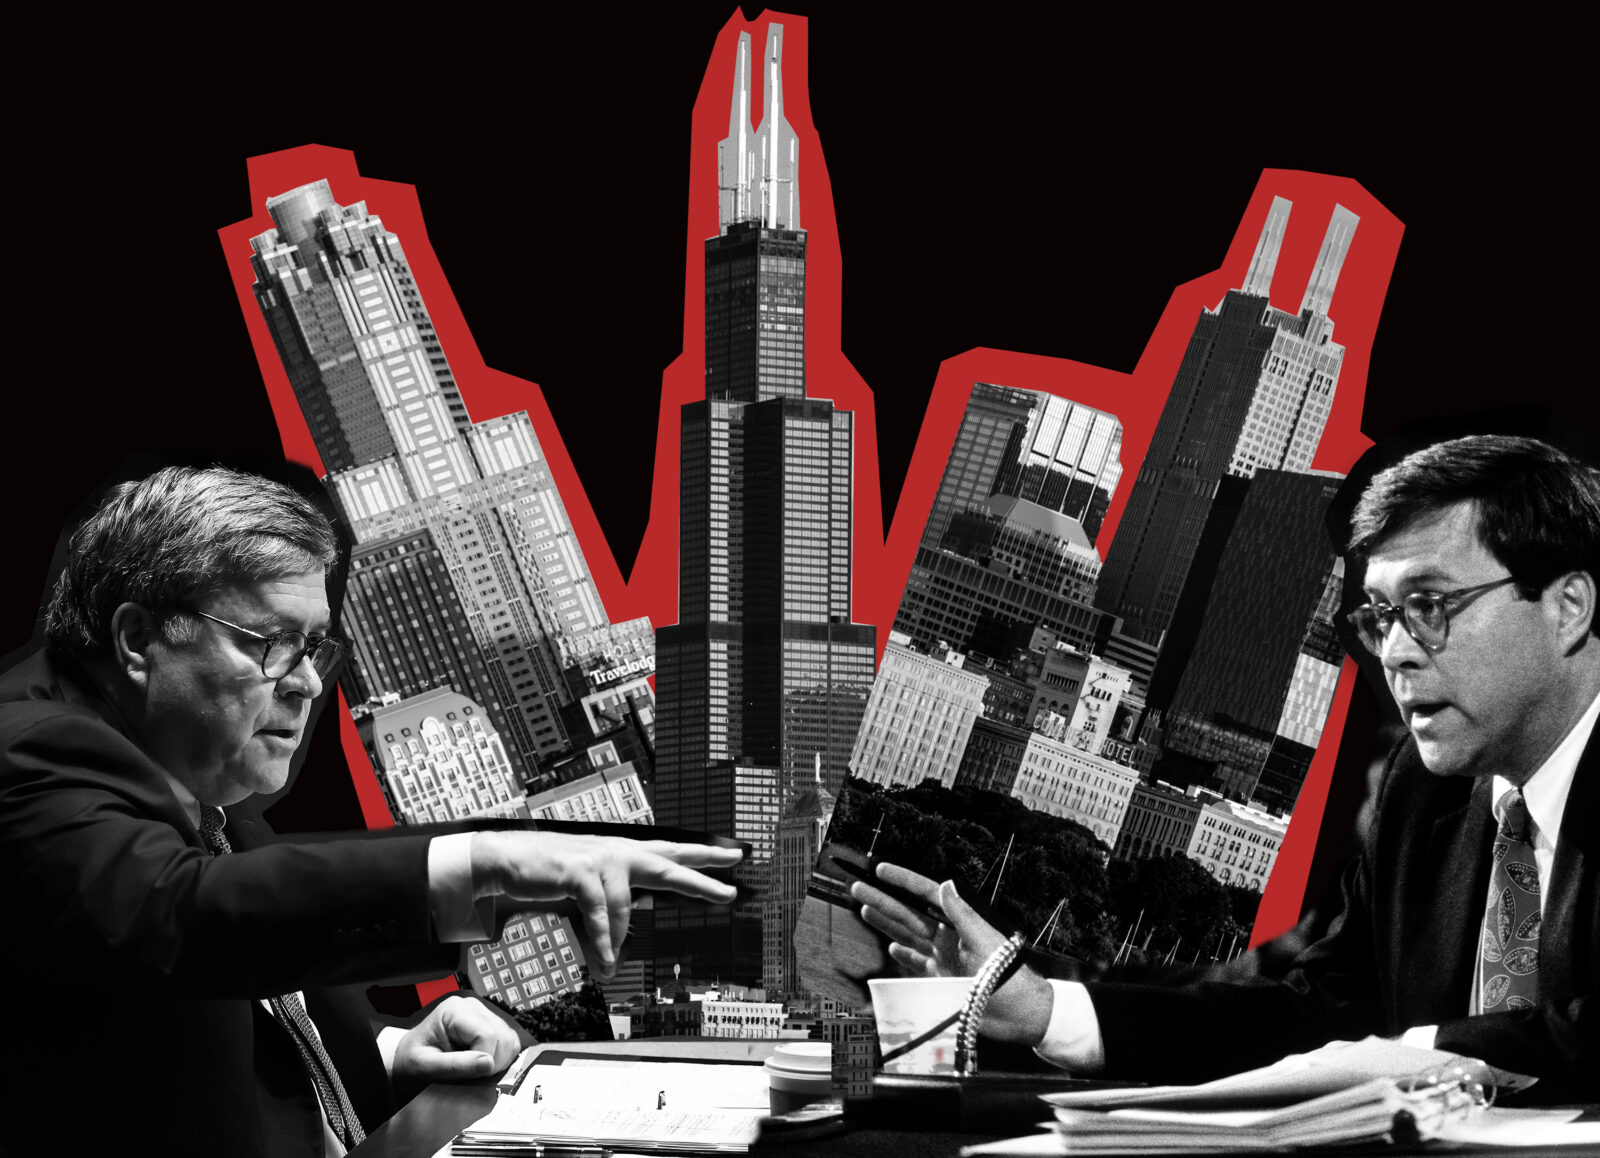 https://assets-c3.propublica.org/images/articles/_threeTwo1600w/20200731-barr-chicago-3x2.jpg